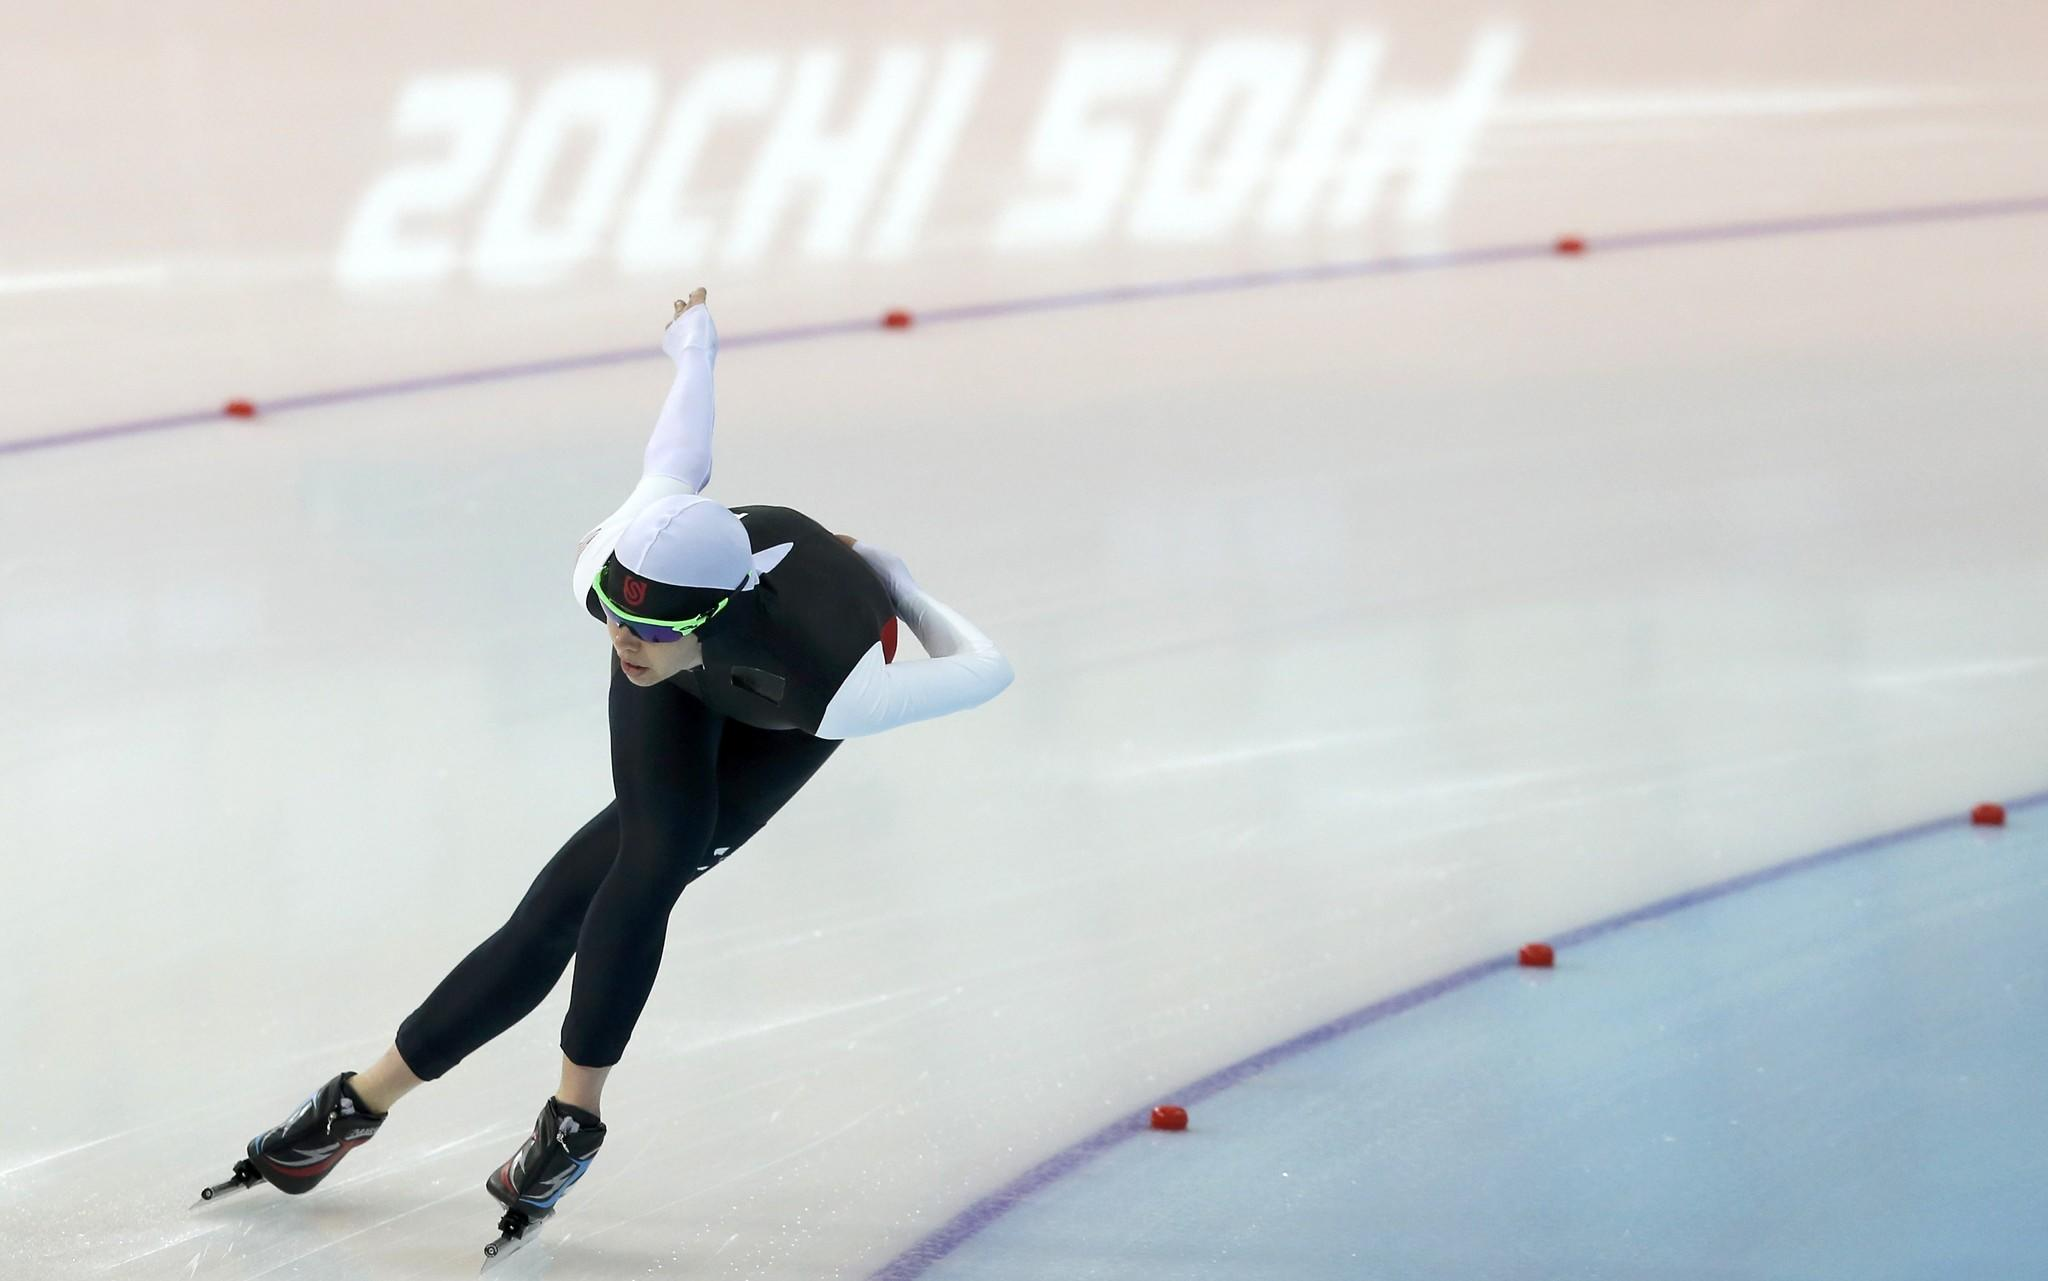 Maria Lamb skates during training competition at the Adler Arena. (Phil Noble/Reuters Photo)